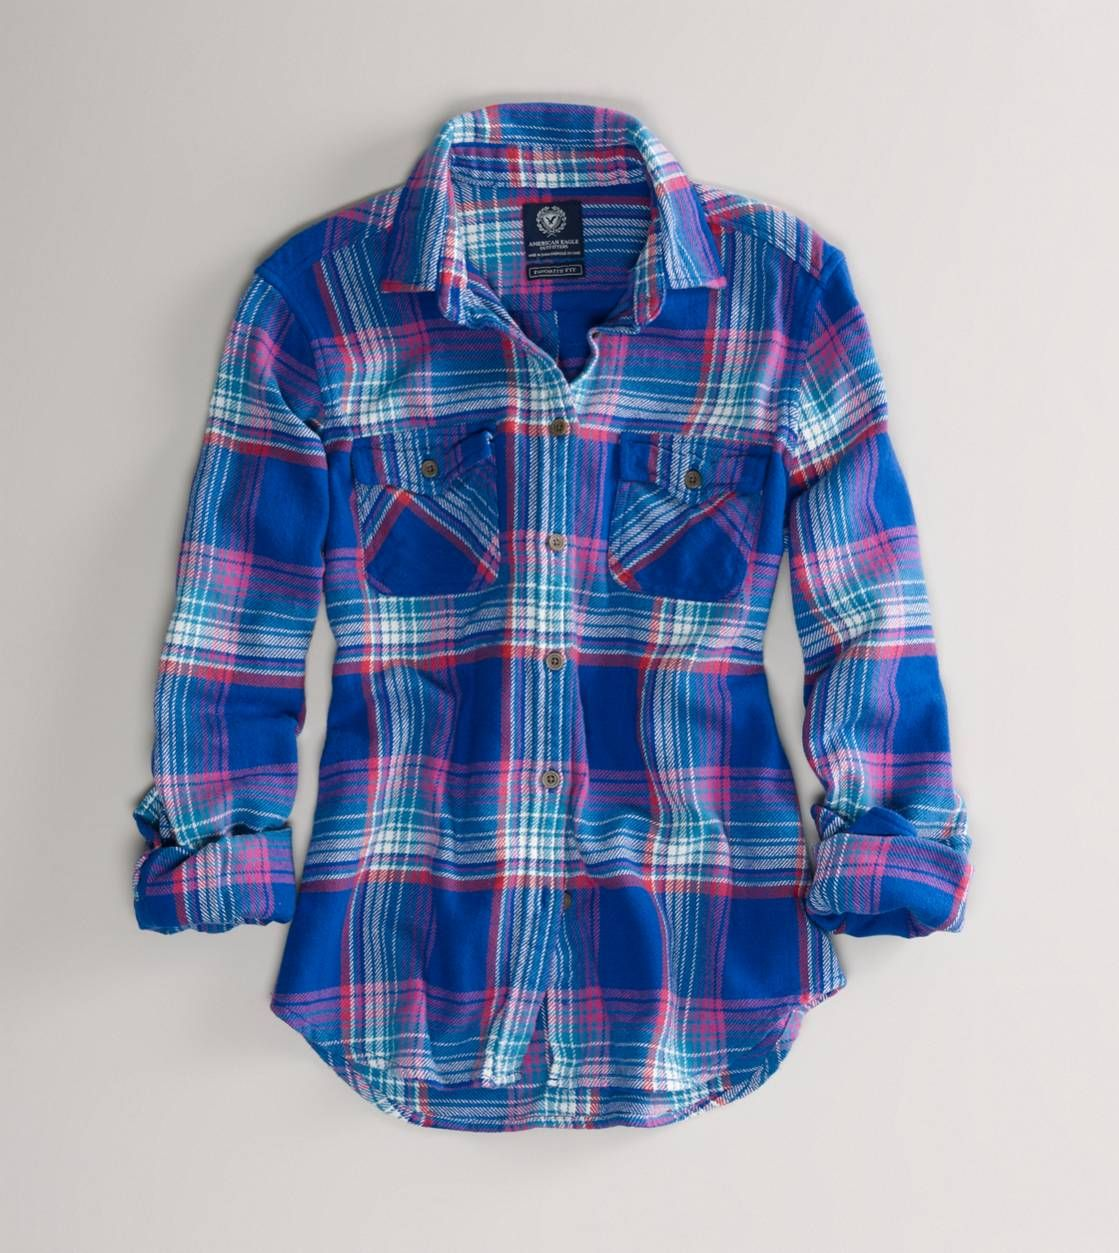 American Eagle Women's Flannel Shirt. Just picked this up ...